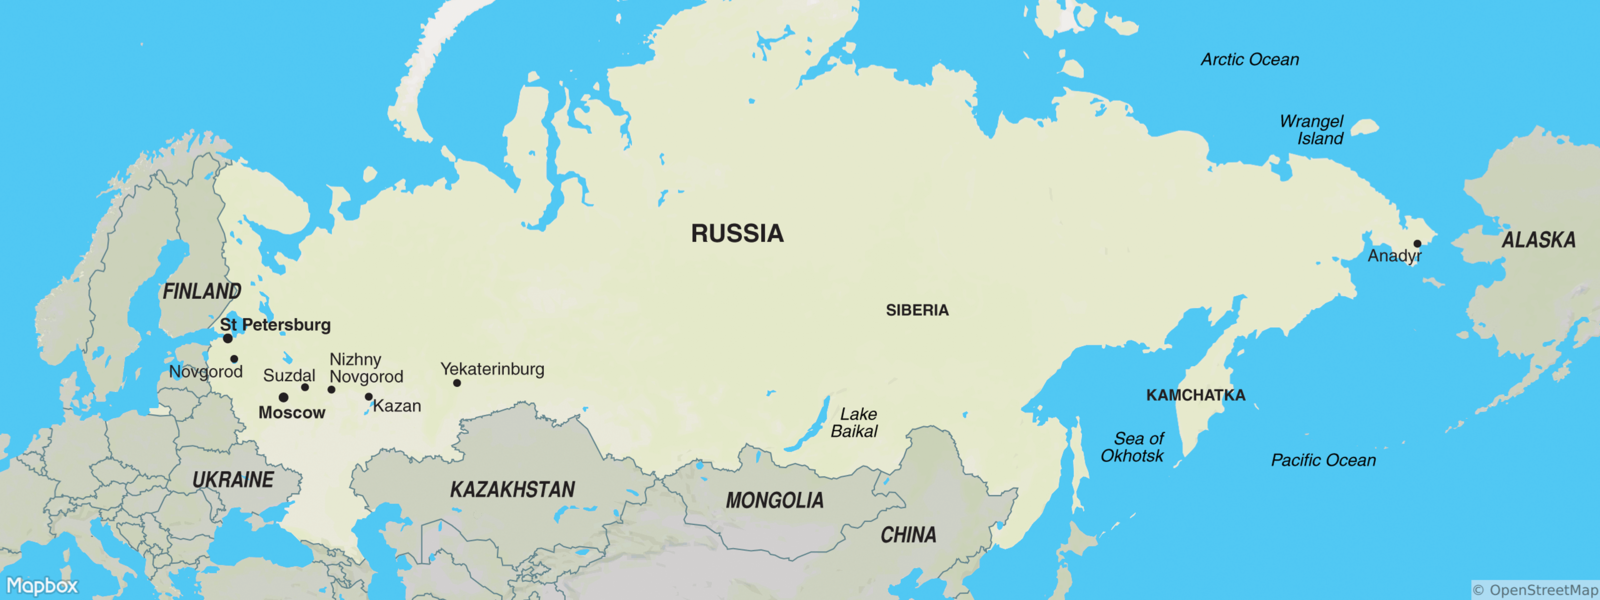 Excursion tours - Russia, Finland, Italy, Norway, China, USA: a selection of sites